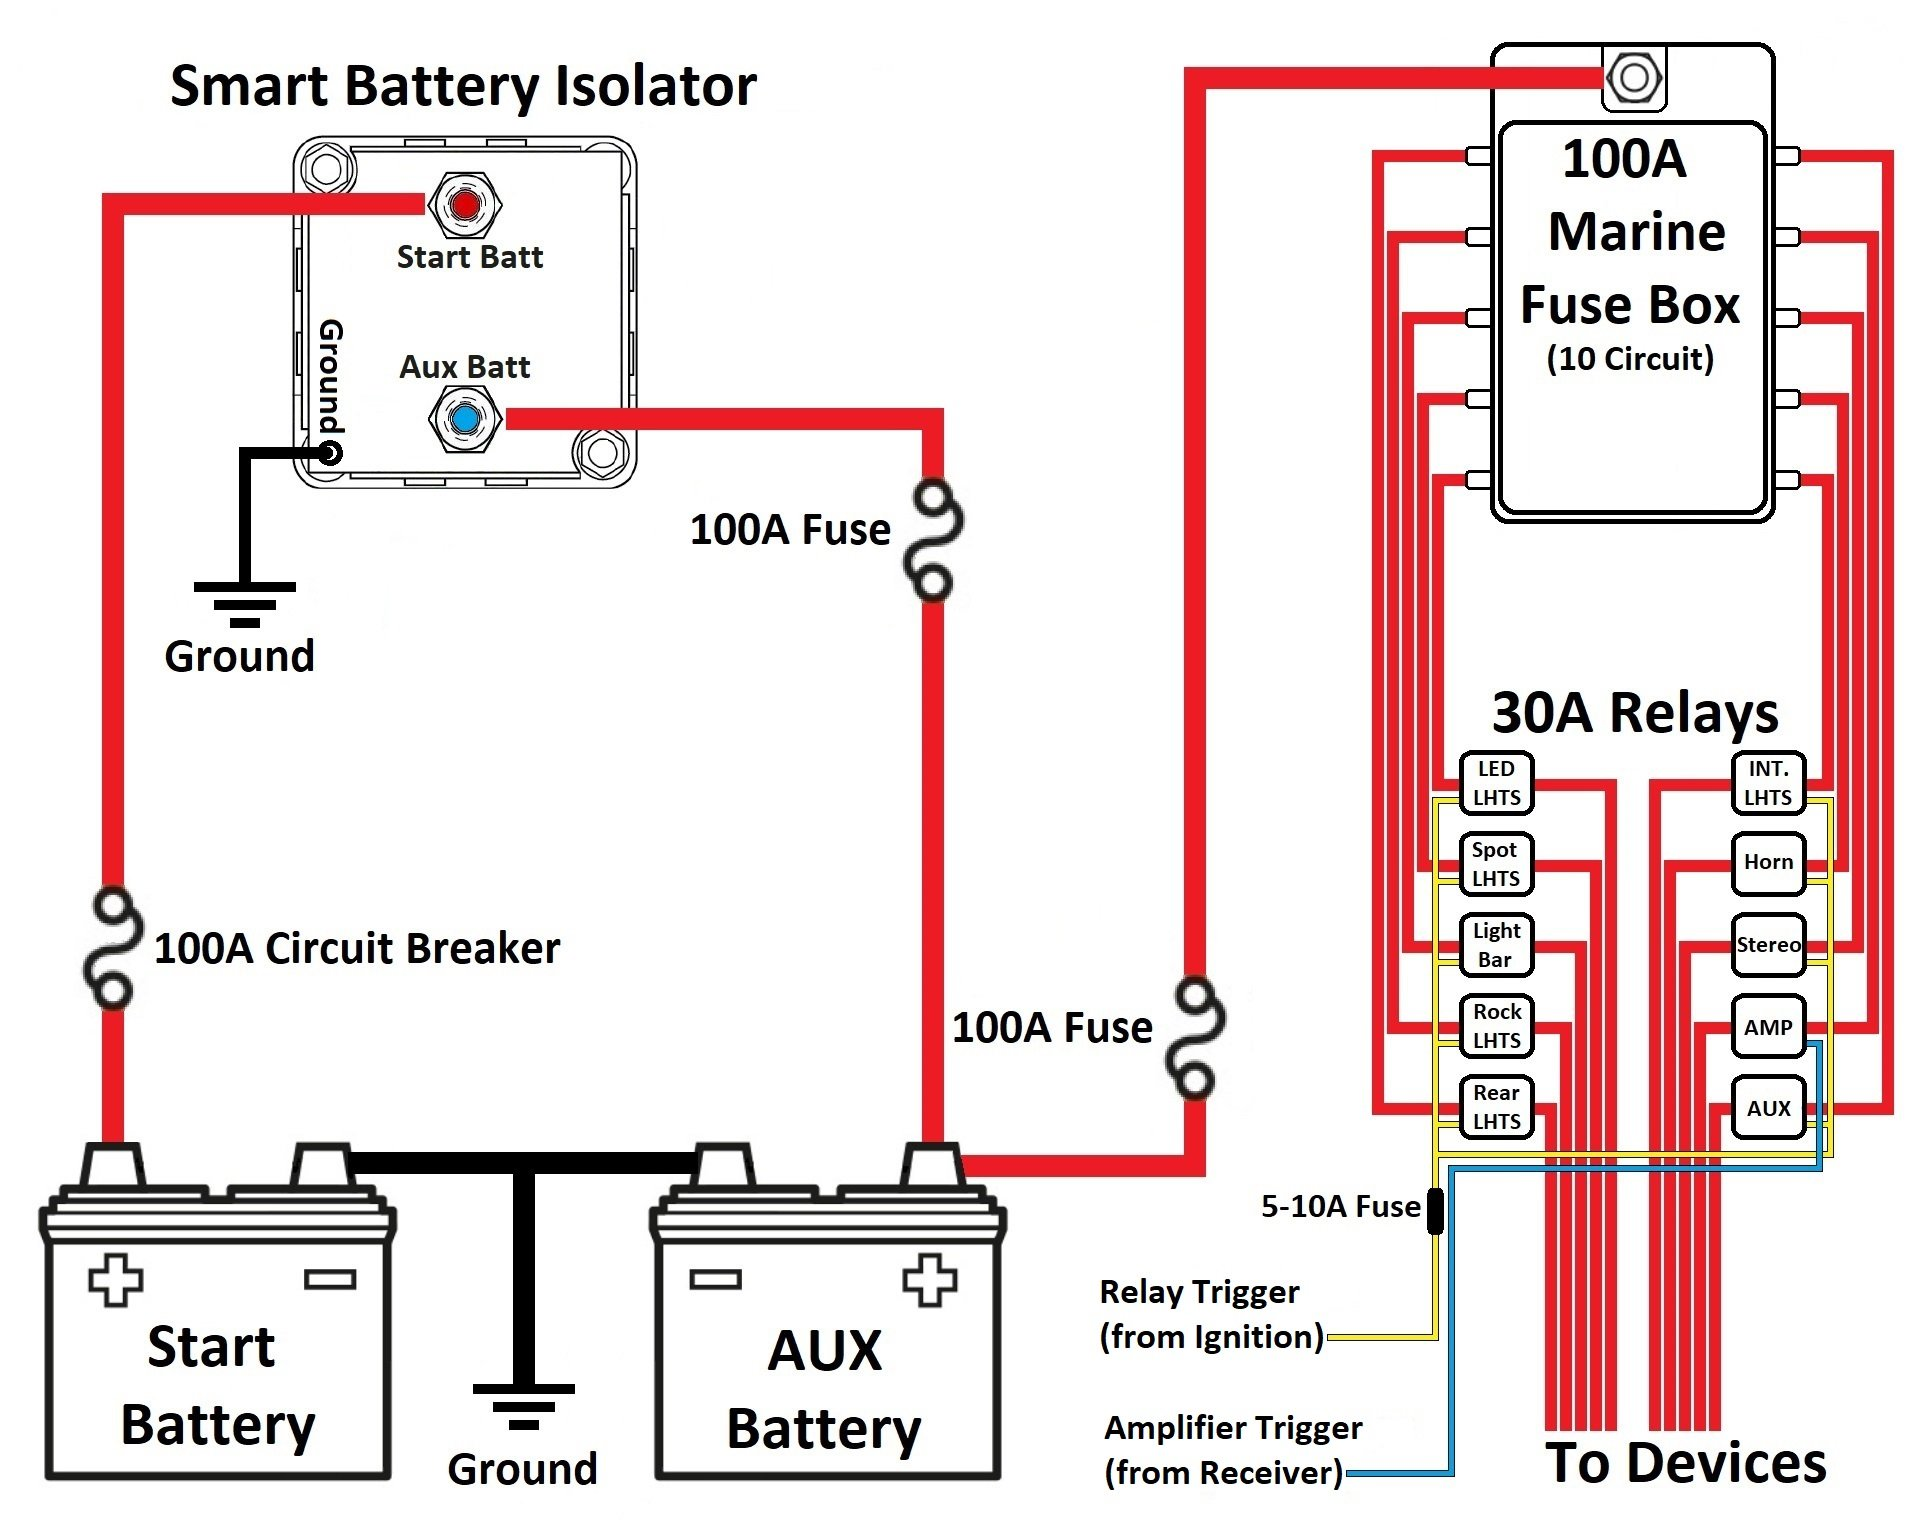 smart battery isolator dual battery wiring diagram. Black Bedroom Furniture Sets. Home Design Ideas